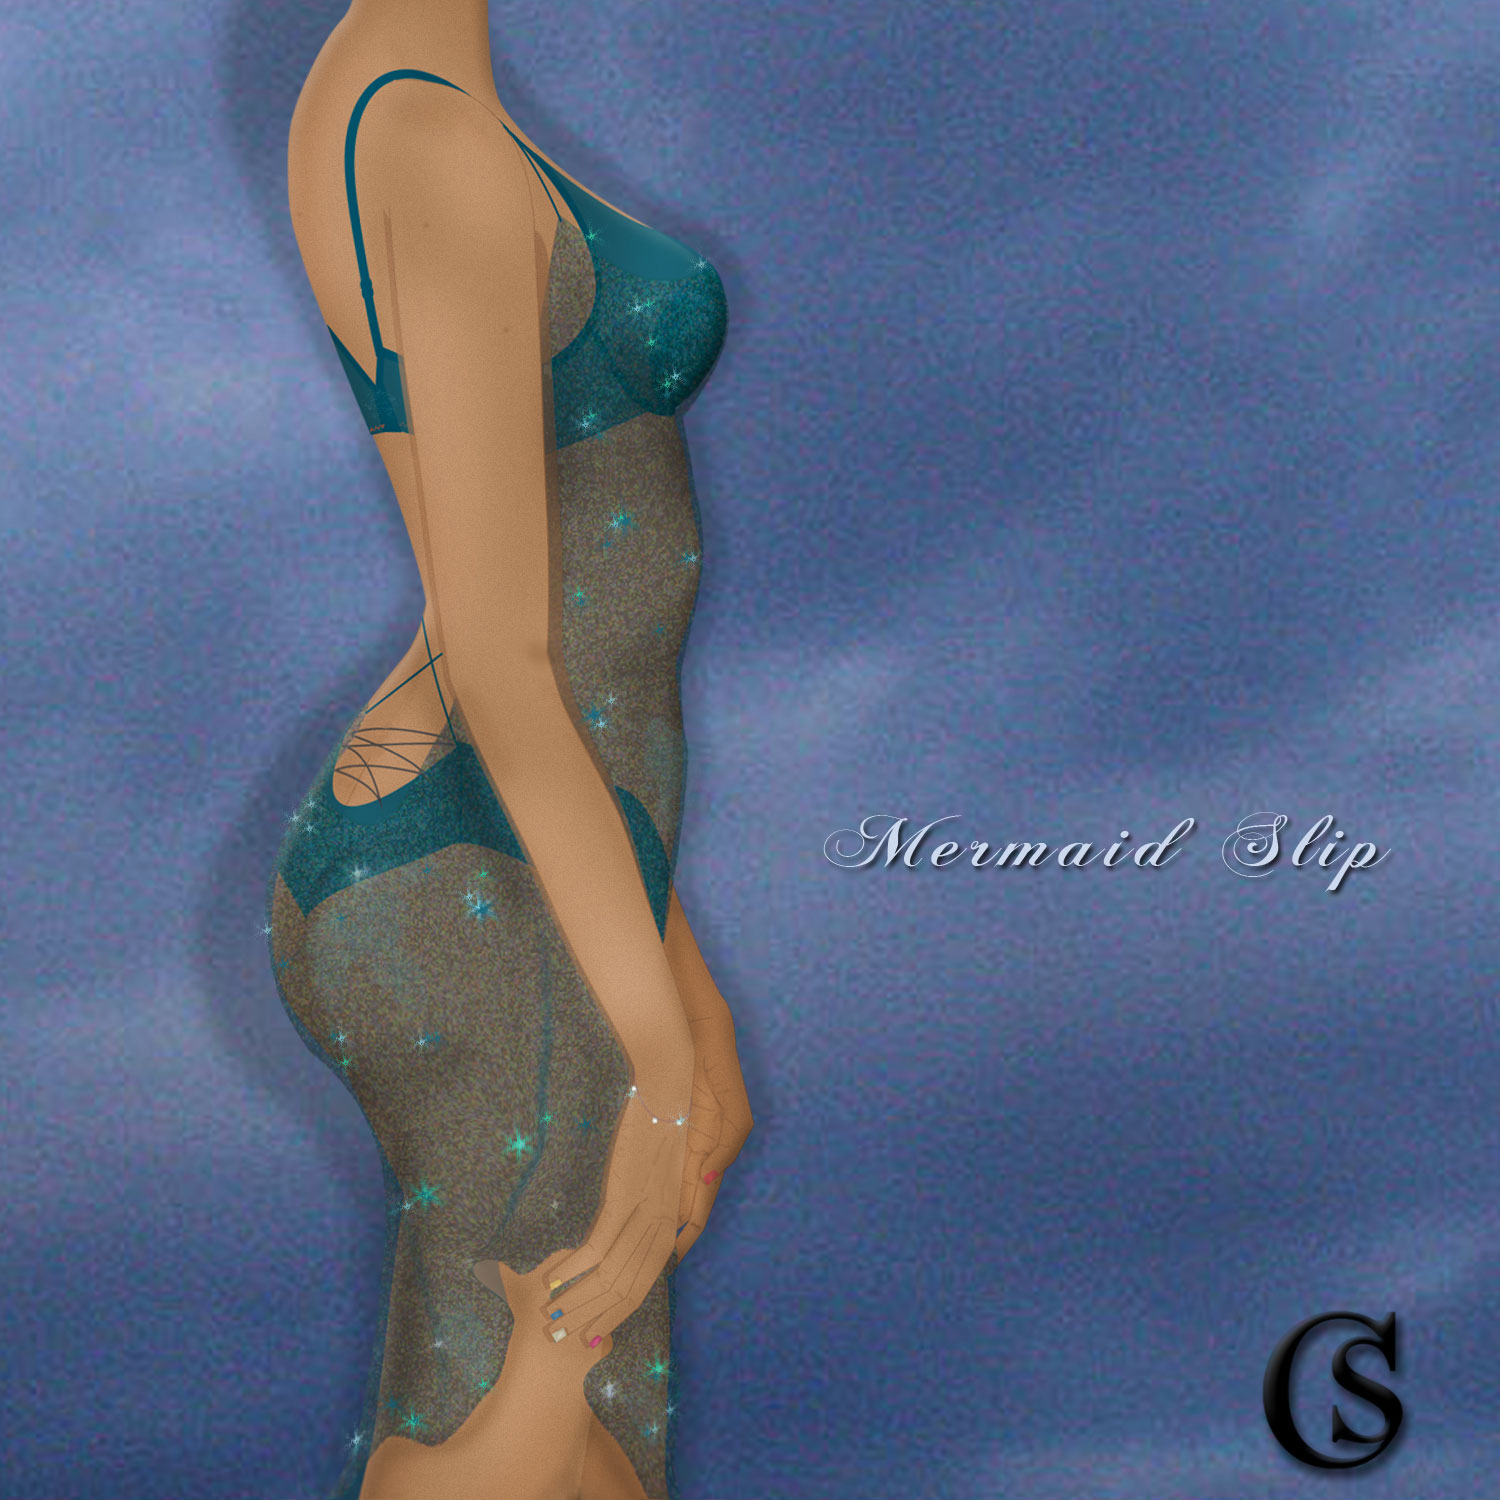 The Mermaid Slip is trending into lingerie concepts CHIARIstyle